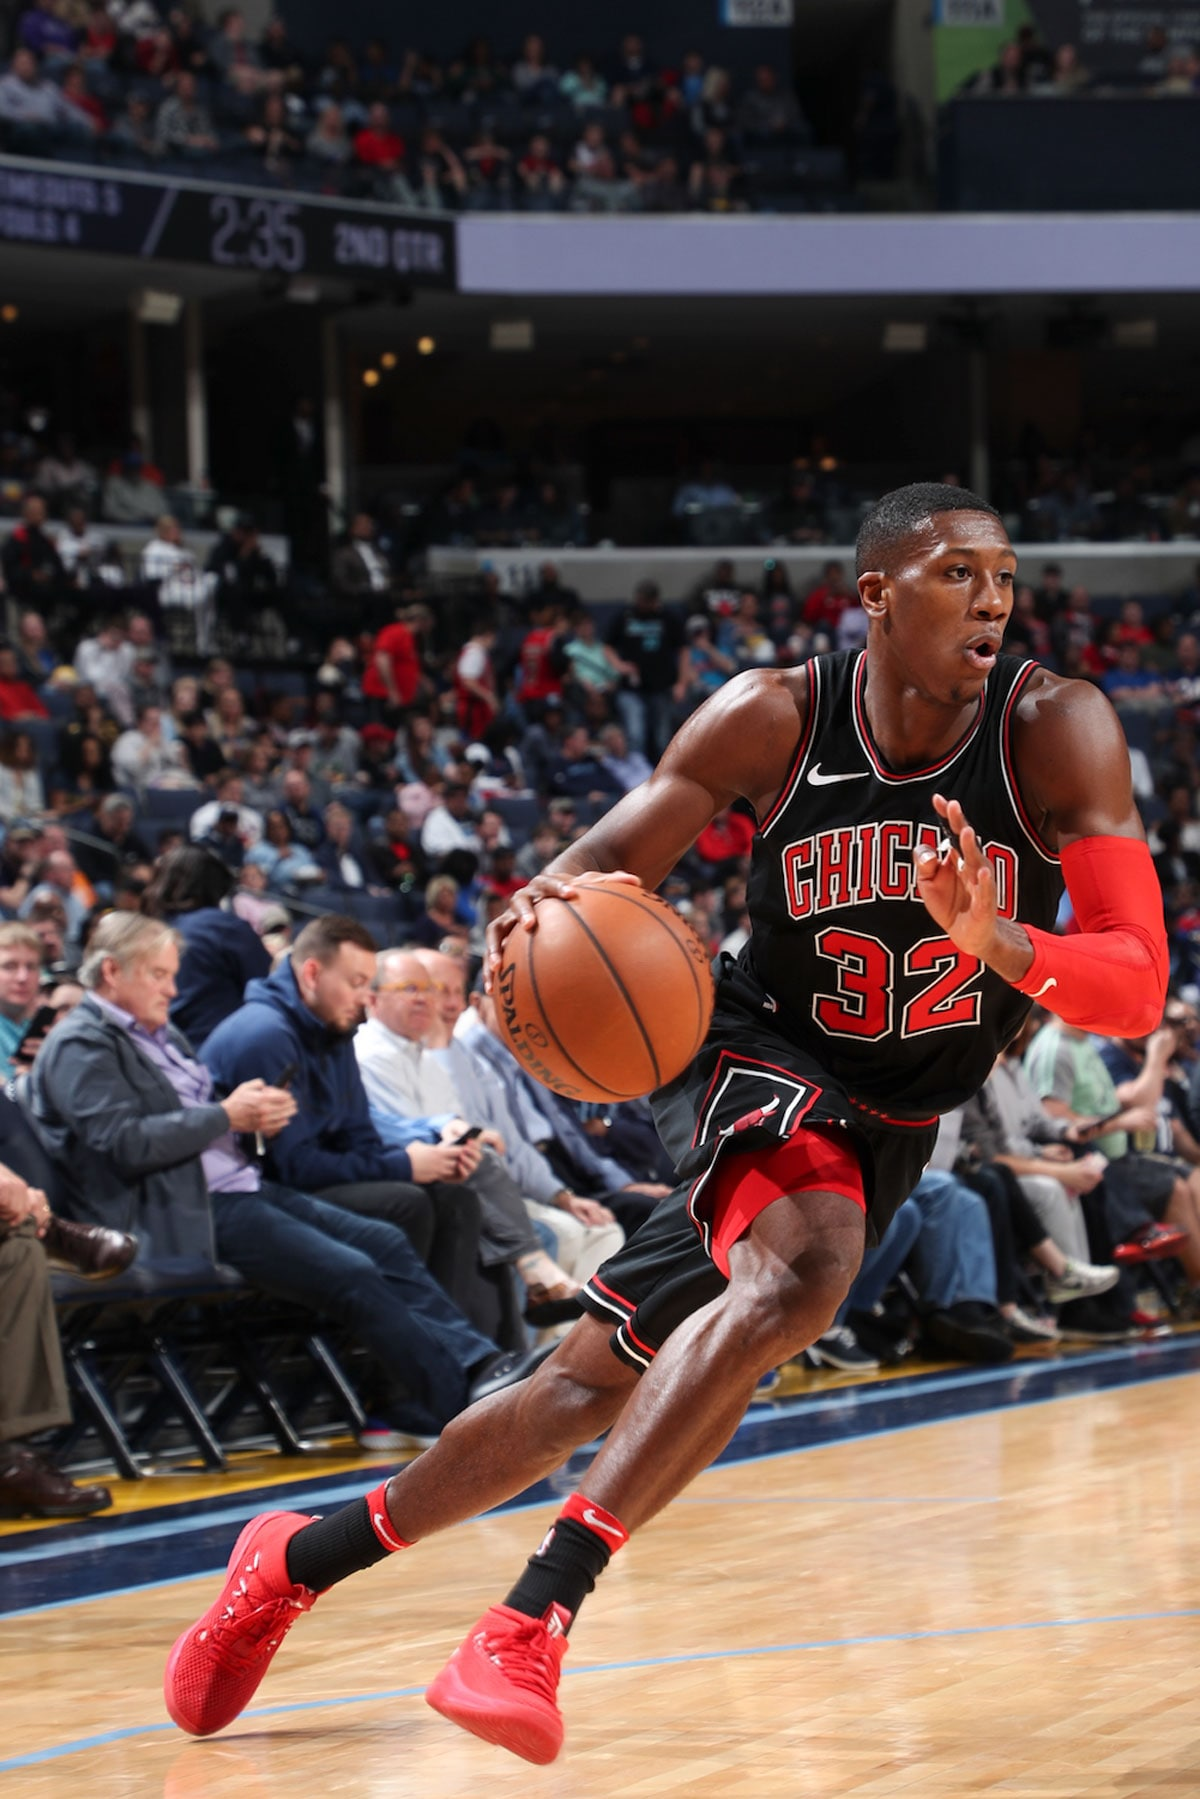 Kris Dunn #32 of the Chicago Bulls handles the ball during the game against the Memphis Grizzlies on March 15, 2018